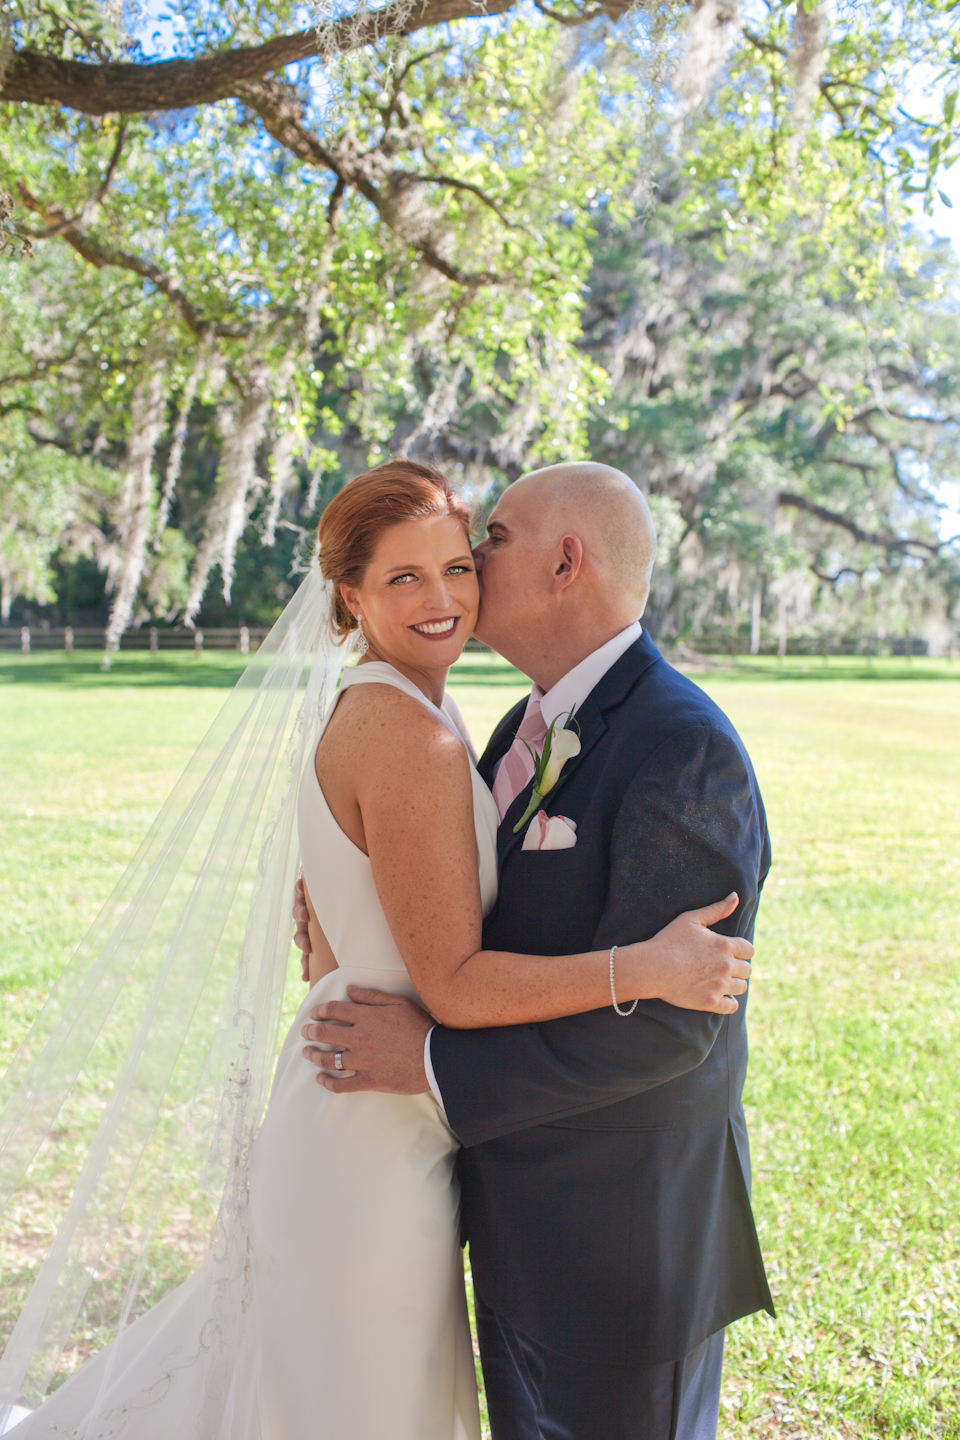 savannahweddingphotographerrosehillplantationweddingcharlestonweddingphotographer17.jpg